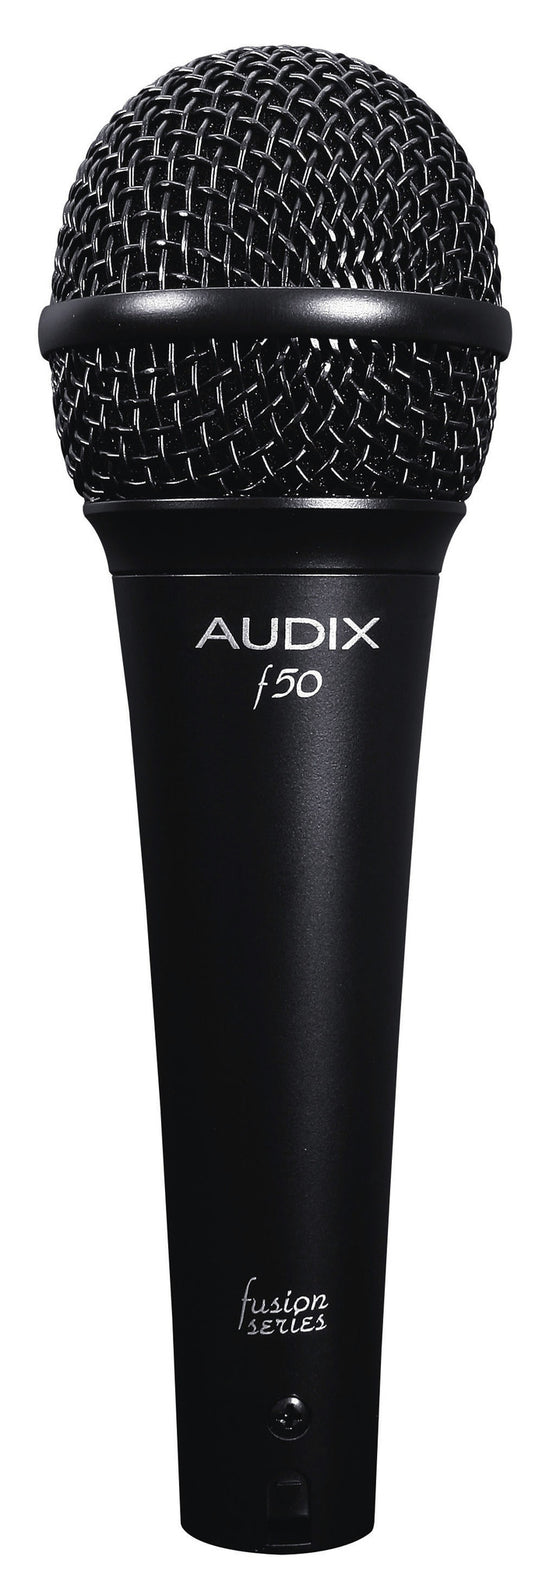 Audix F50 Dynamic Vocal Microphone